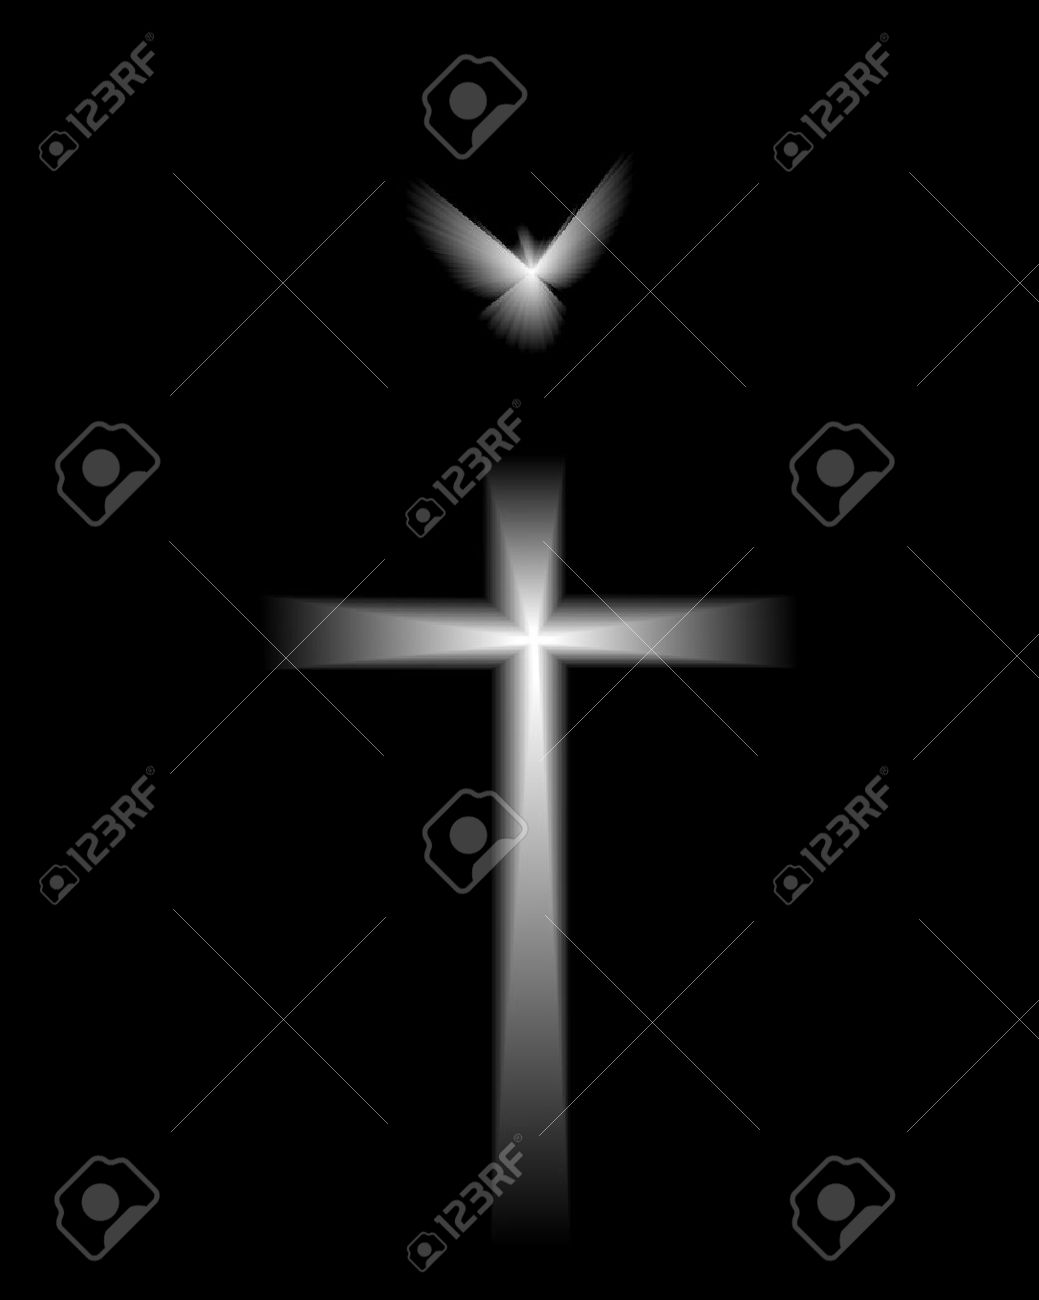 Background batik pattern stock photography image 803022 - White Cross Black Background